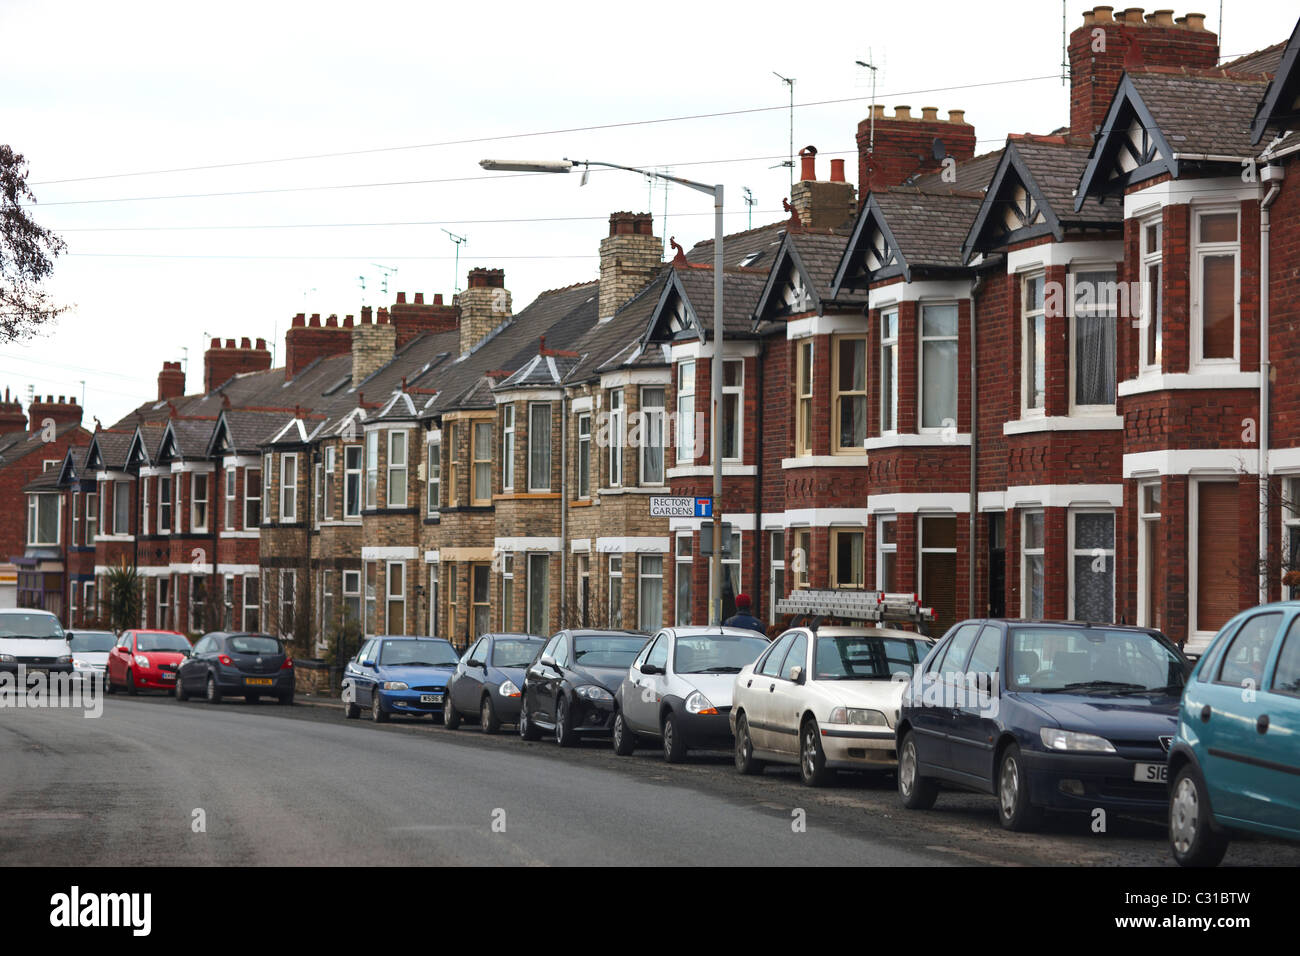 Typical Row Of Terraced Houses In York Stock Photo